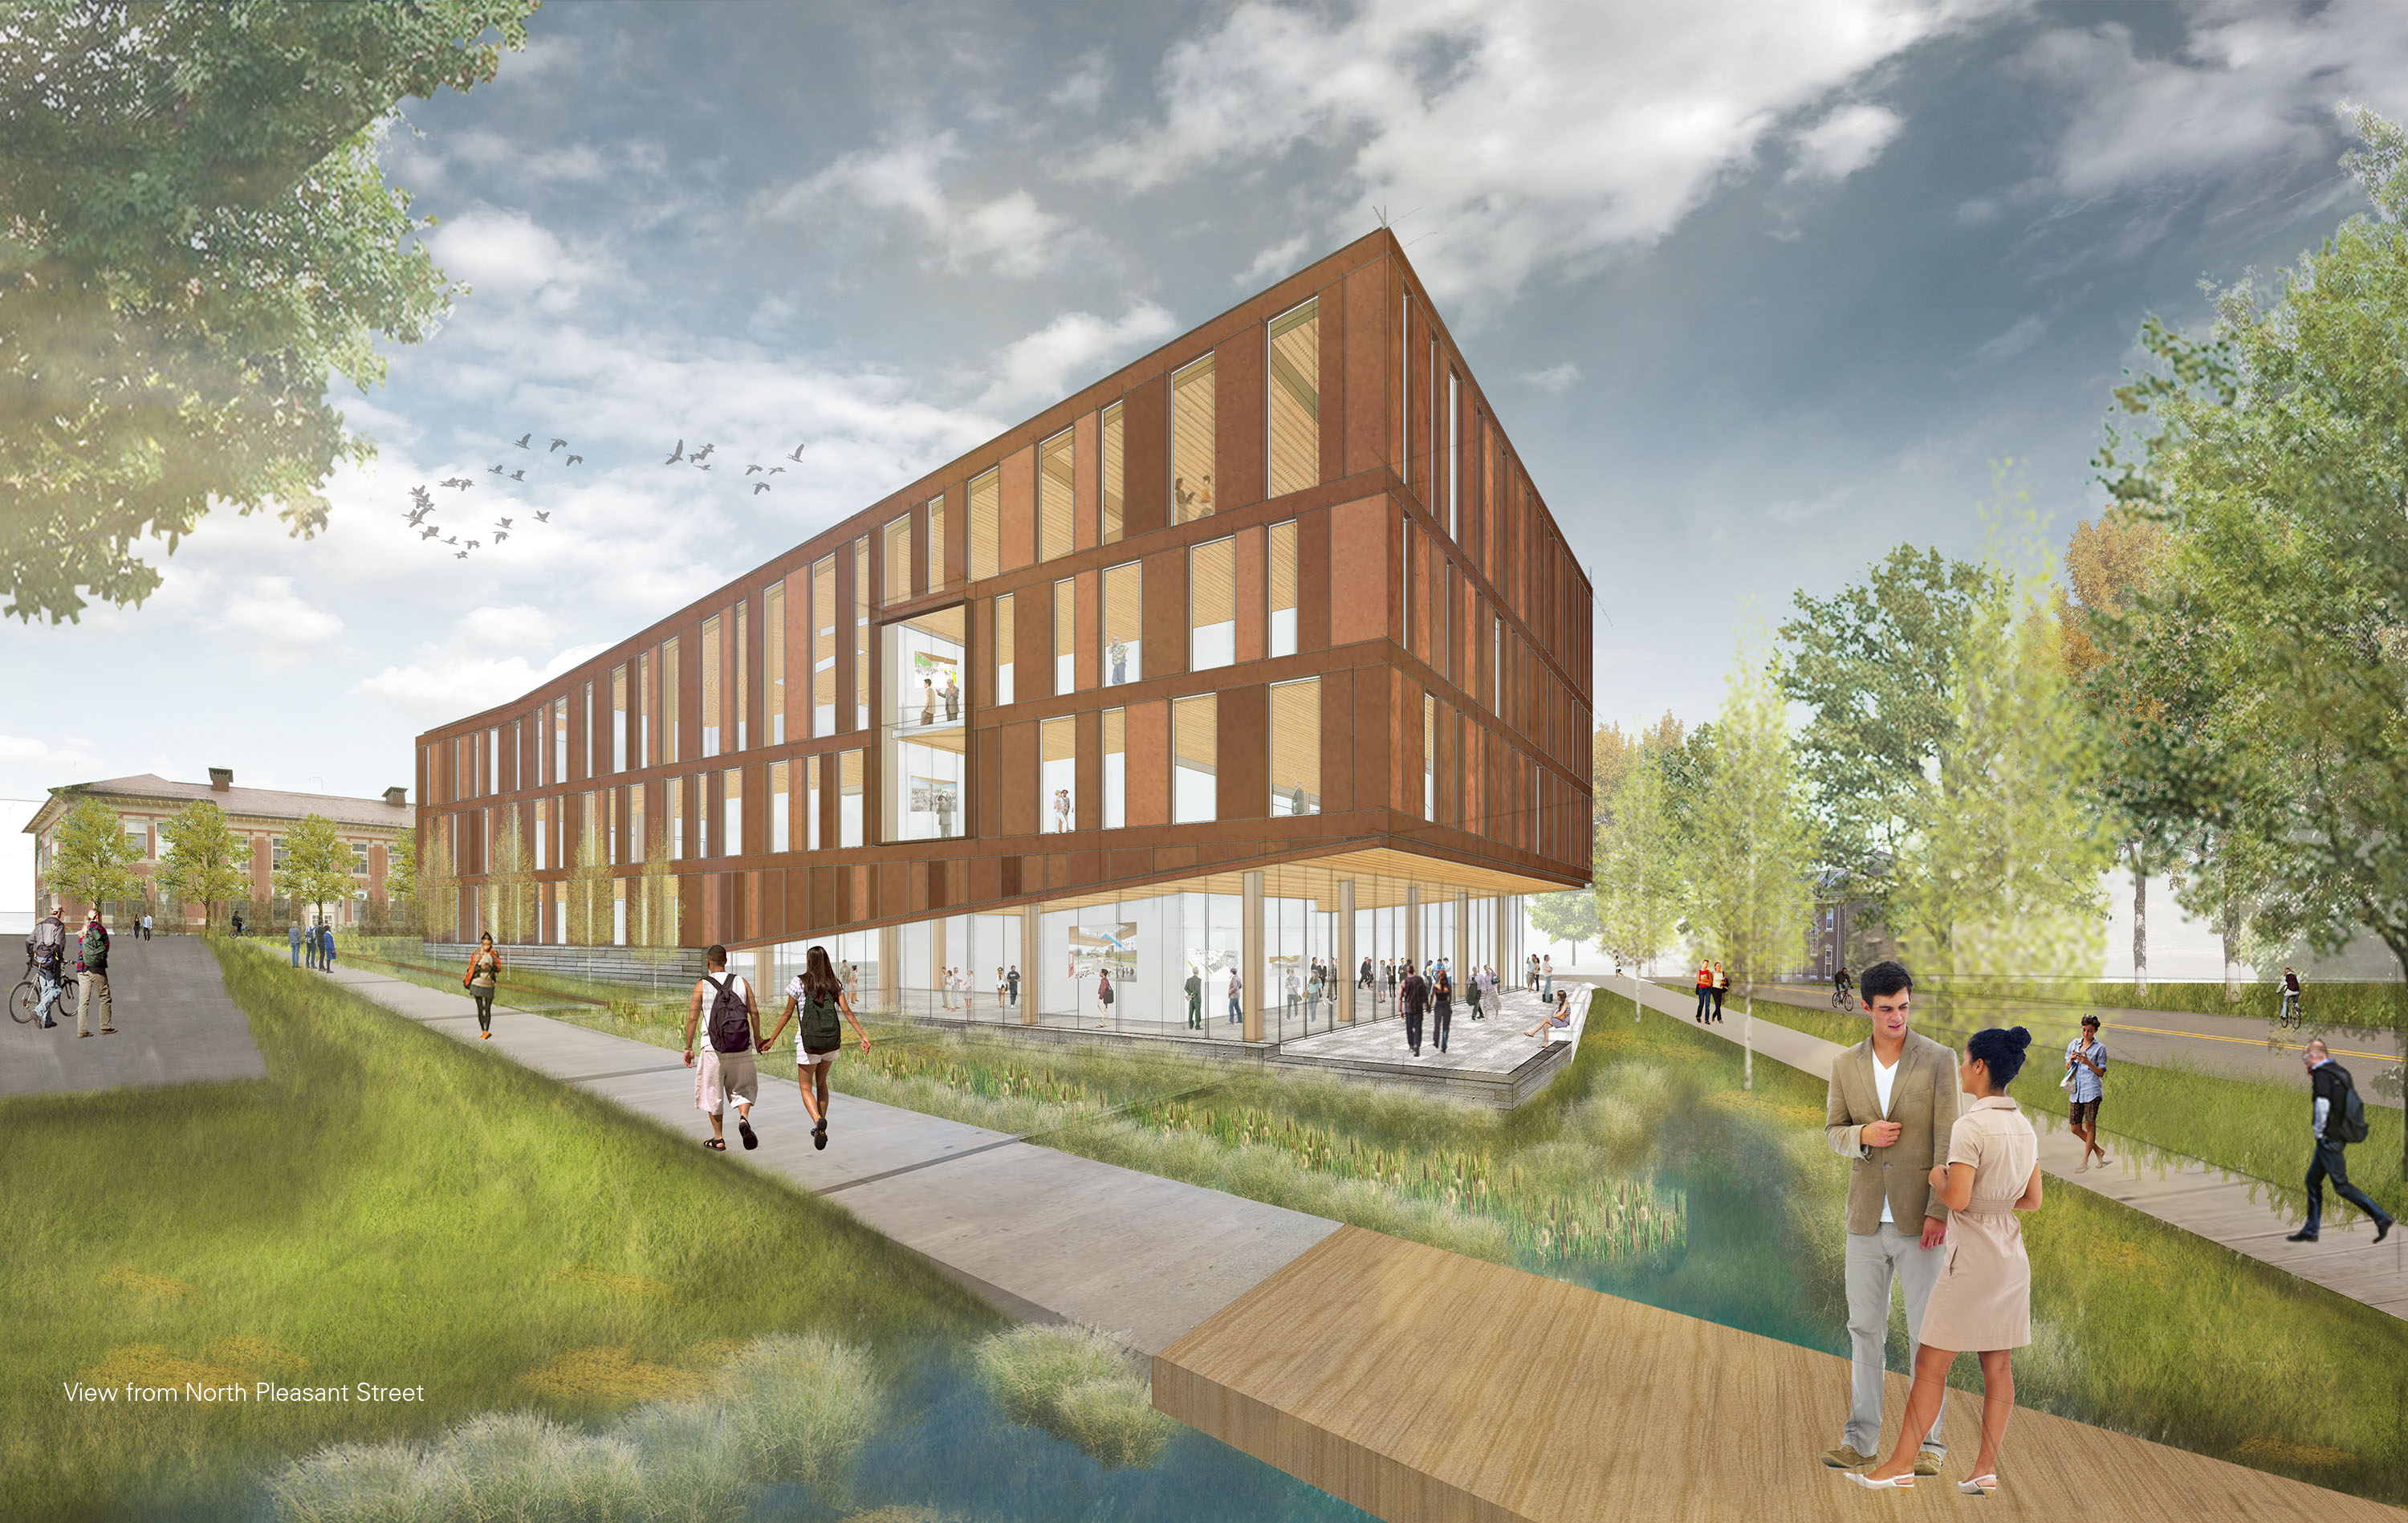 The John W. Olver Design Building at UMass Amherst | Building and ...